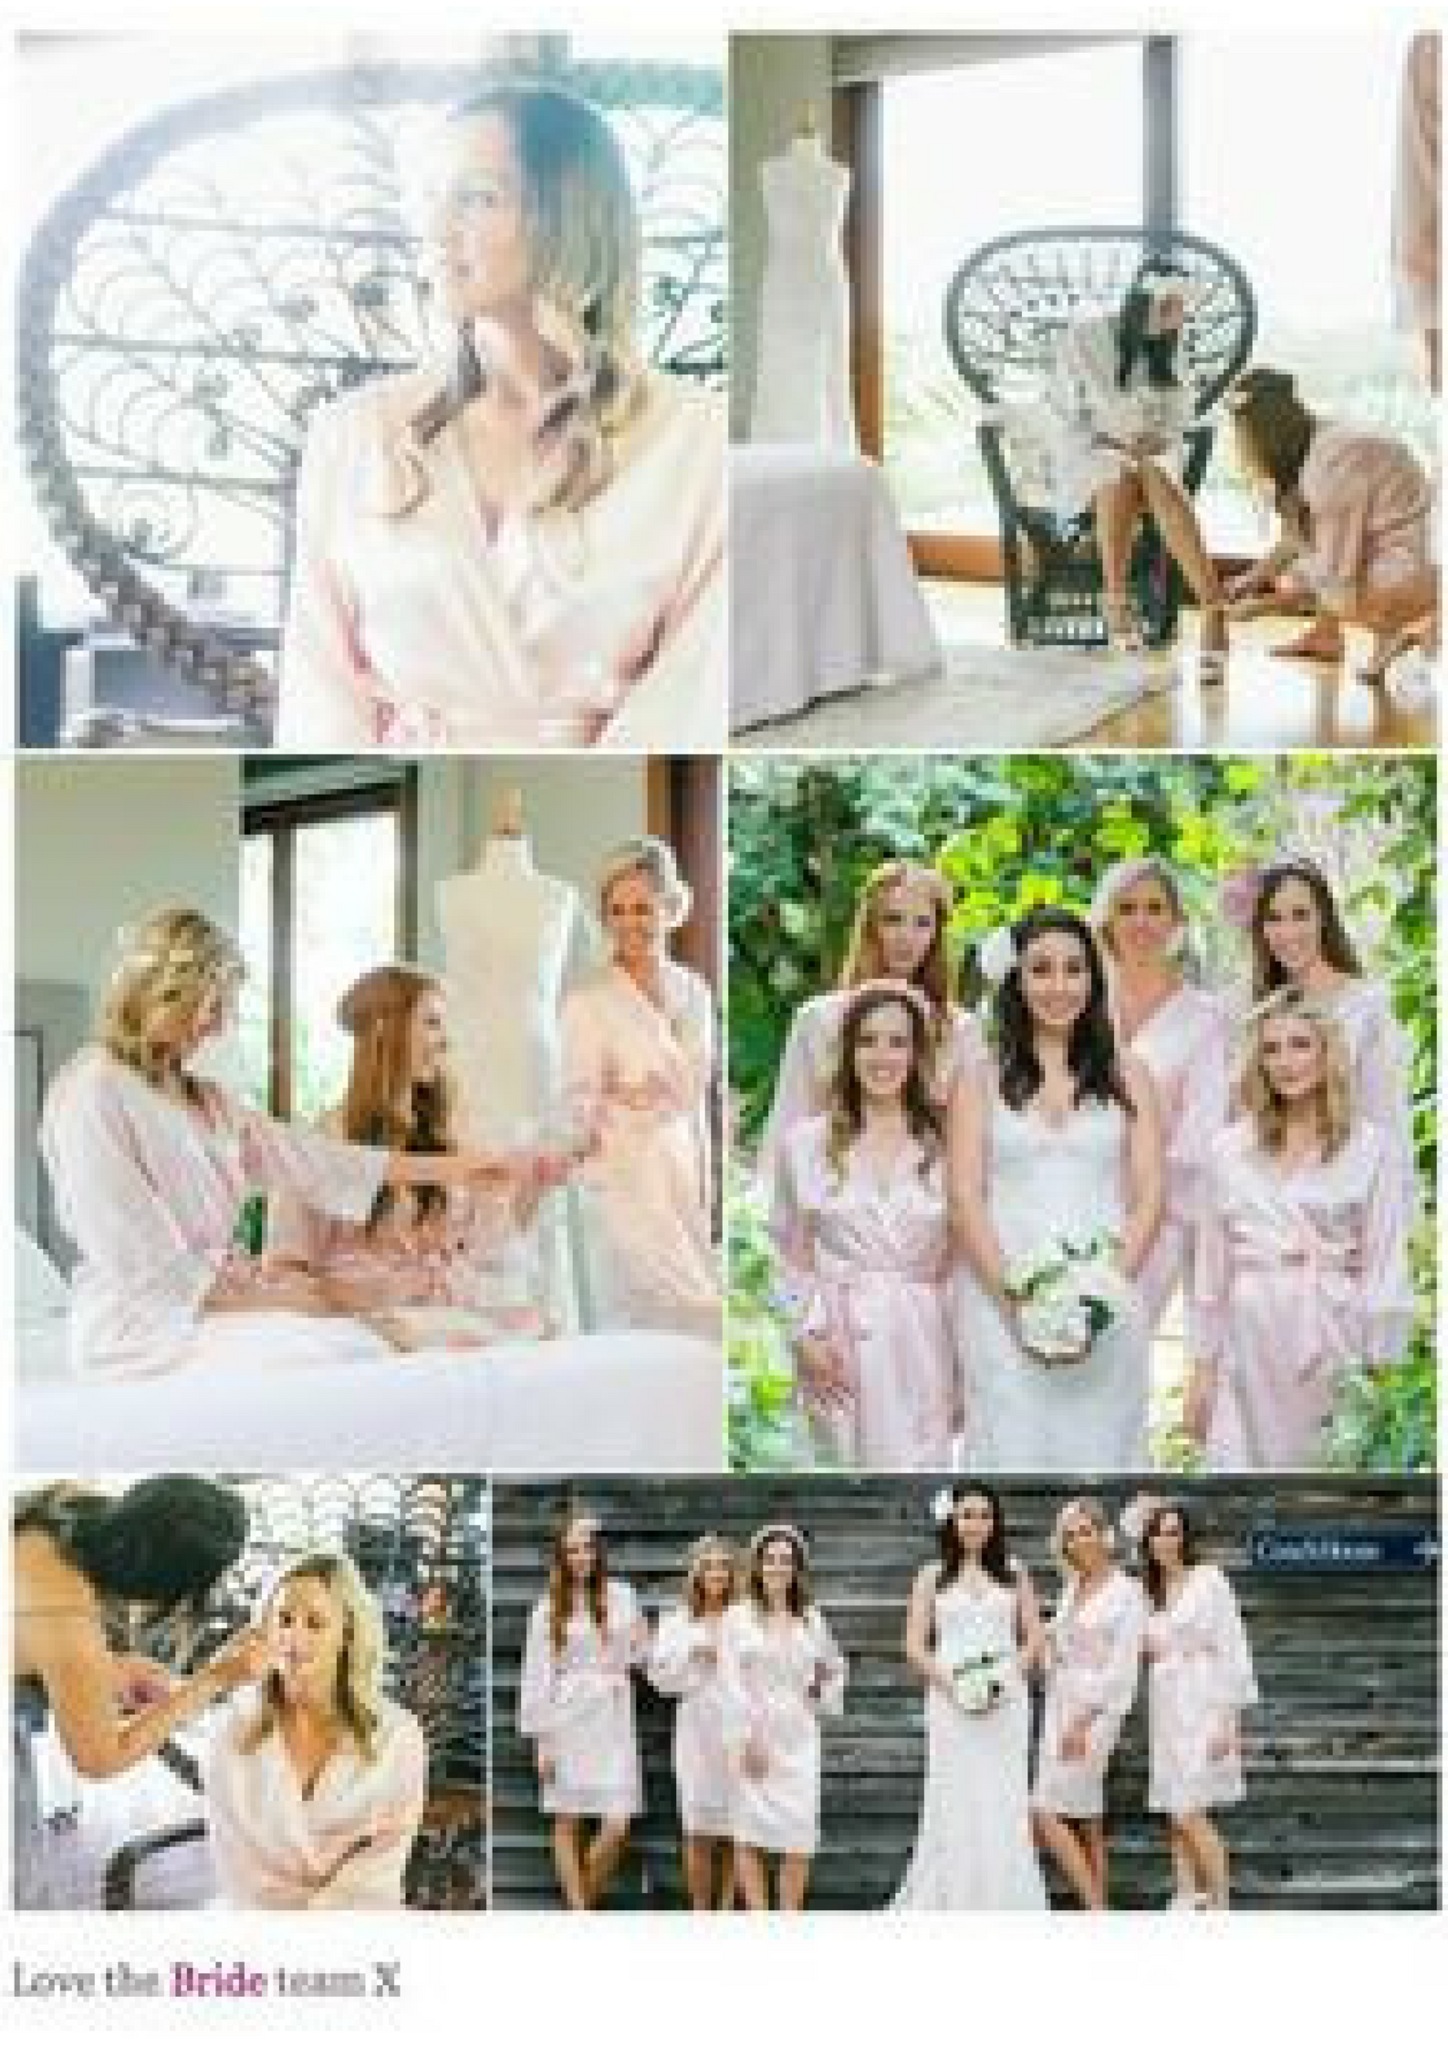 The Bridal Blog, Bride Australia: Cute wedding robes for the big day.